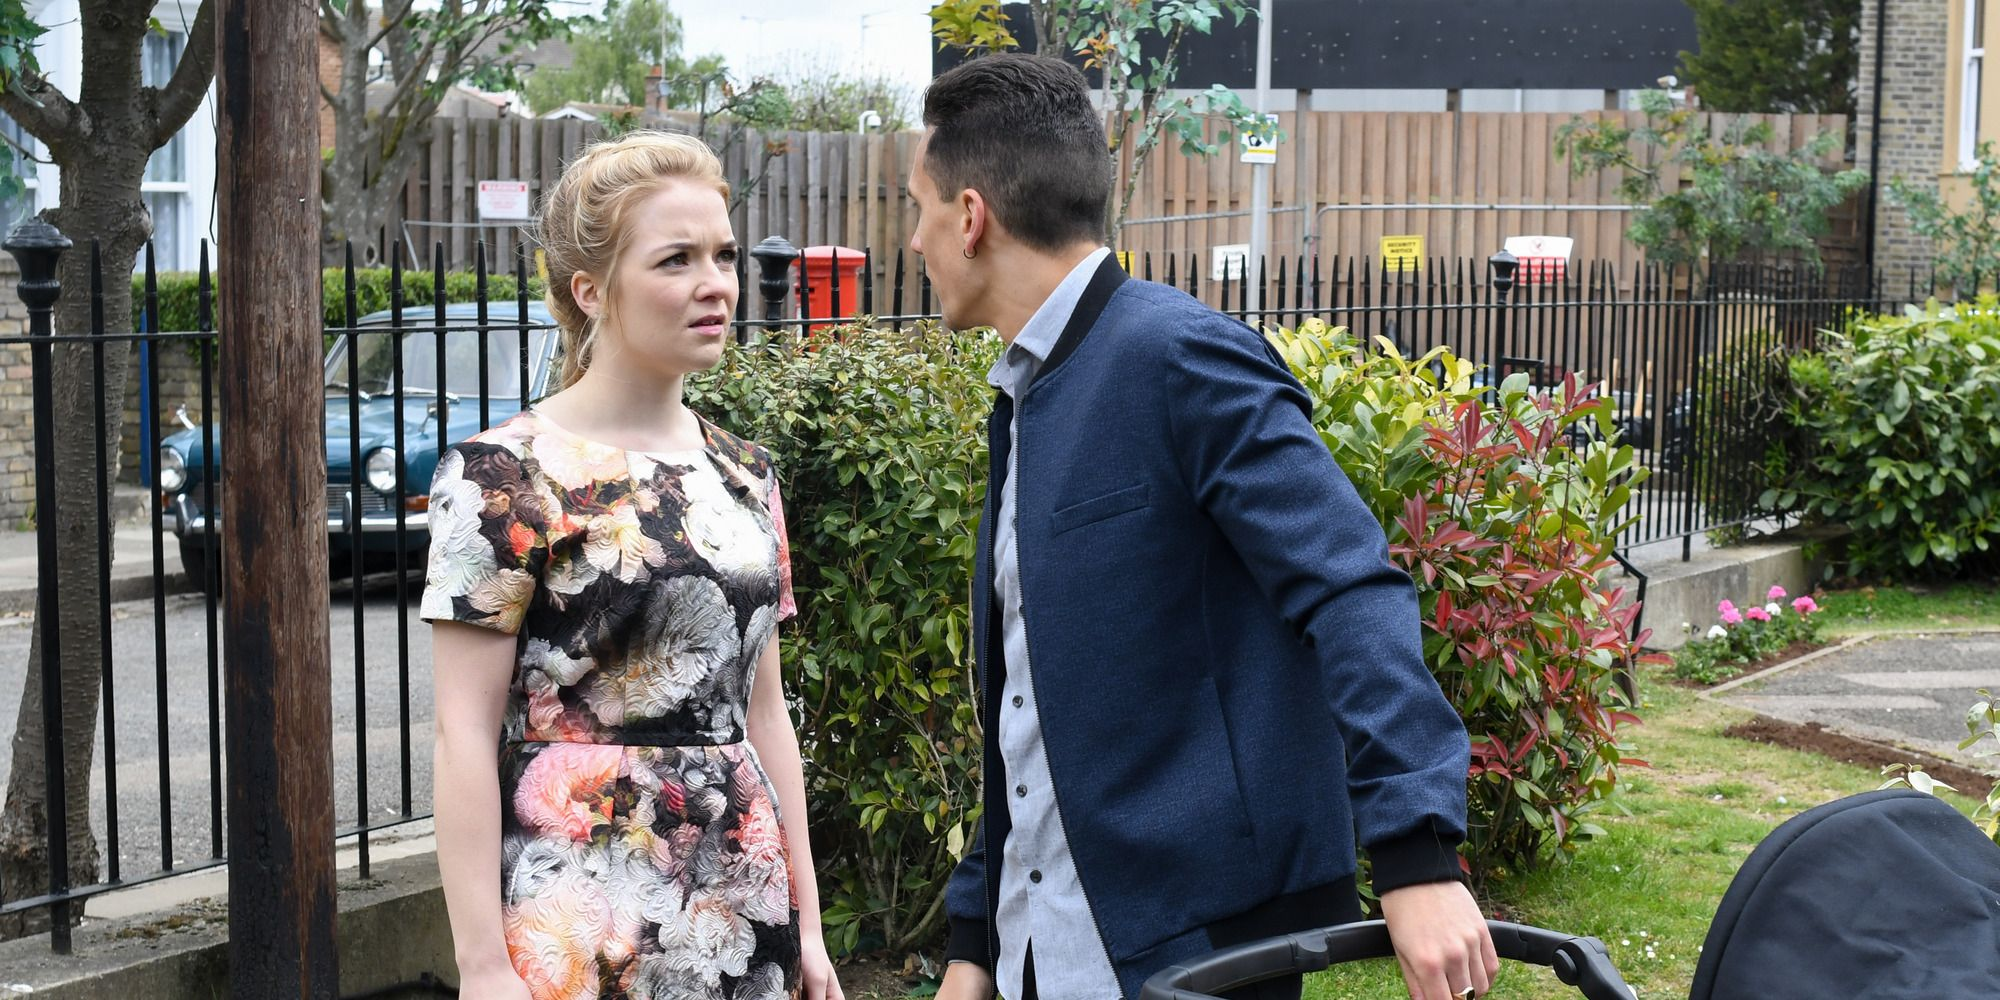 Abi Branning spies an opportunity to cause trouble with Steven Beale in EastEnders